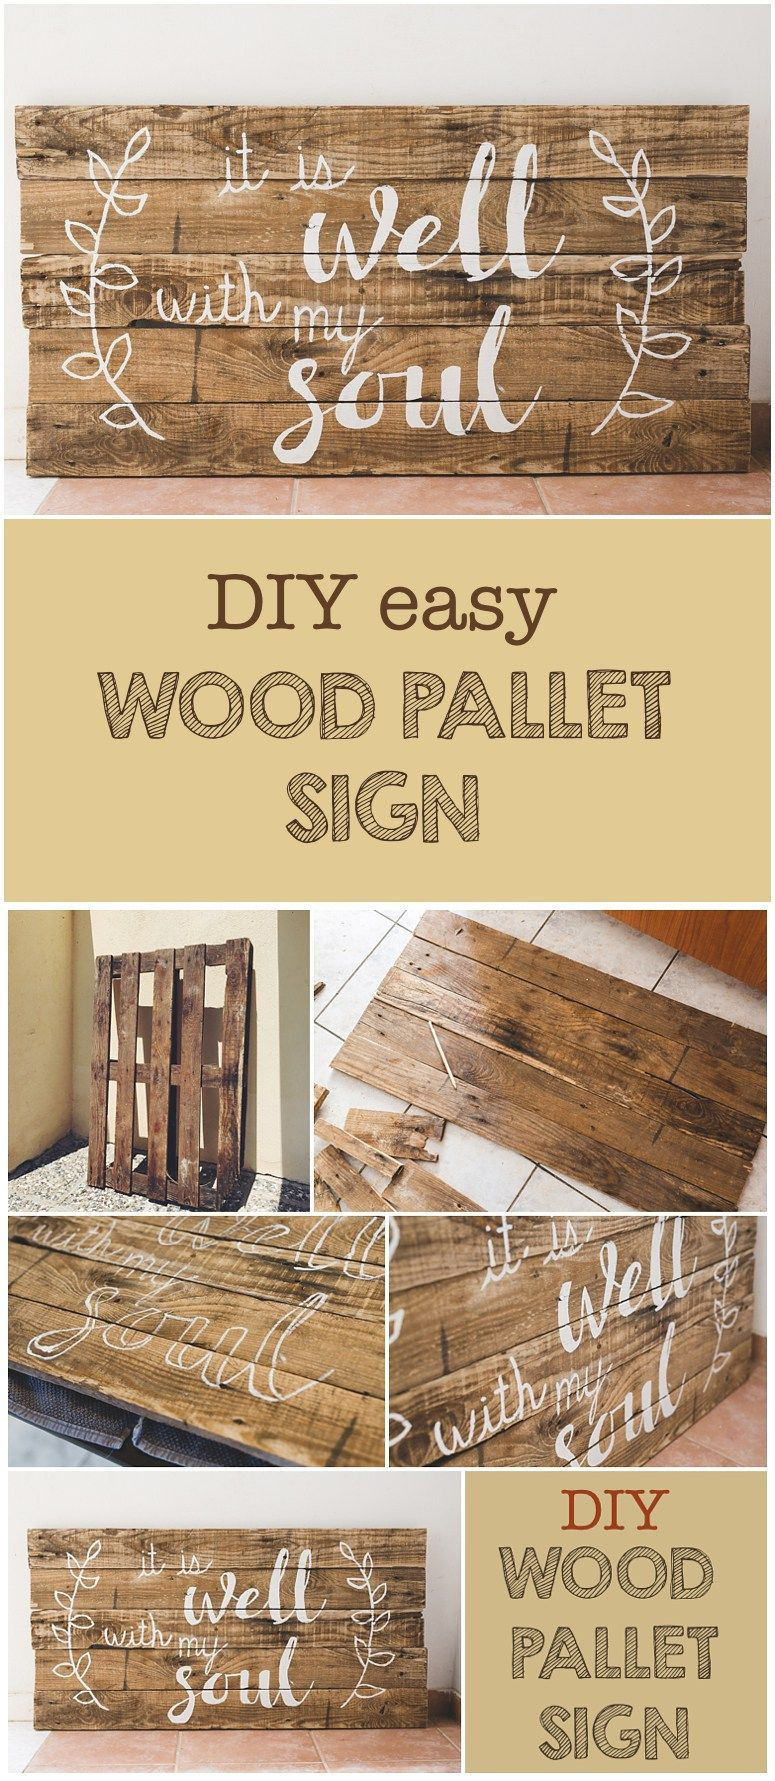 This DIY woodpallet sign is super simple to make yet so trendy